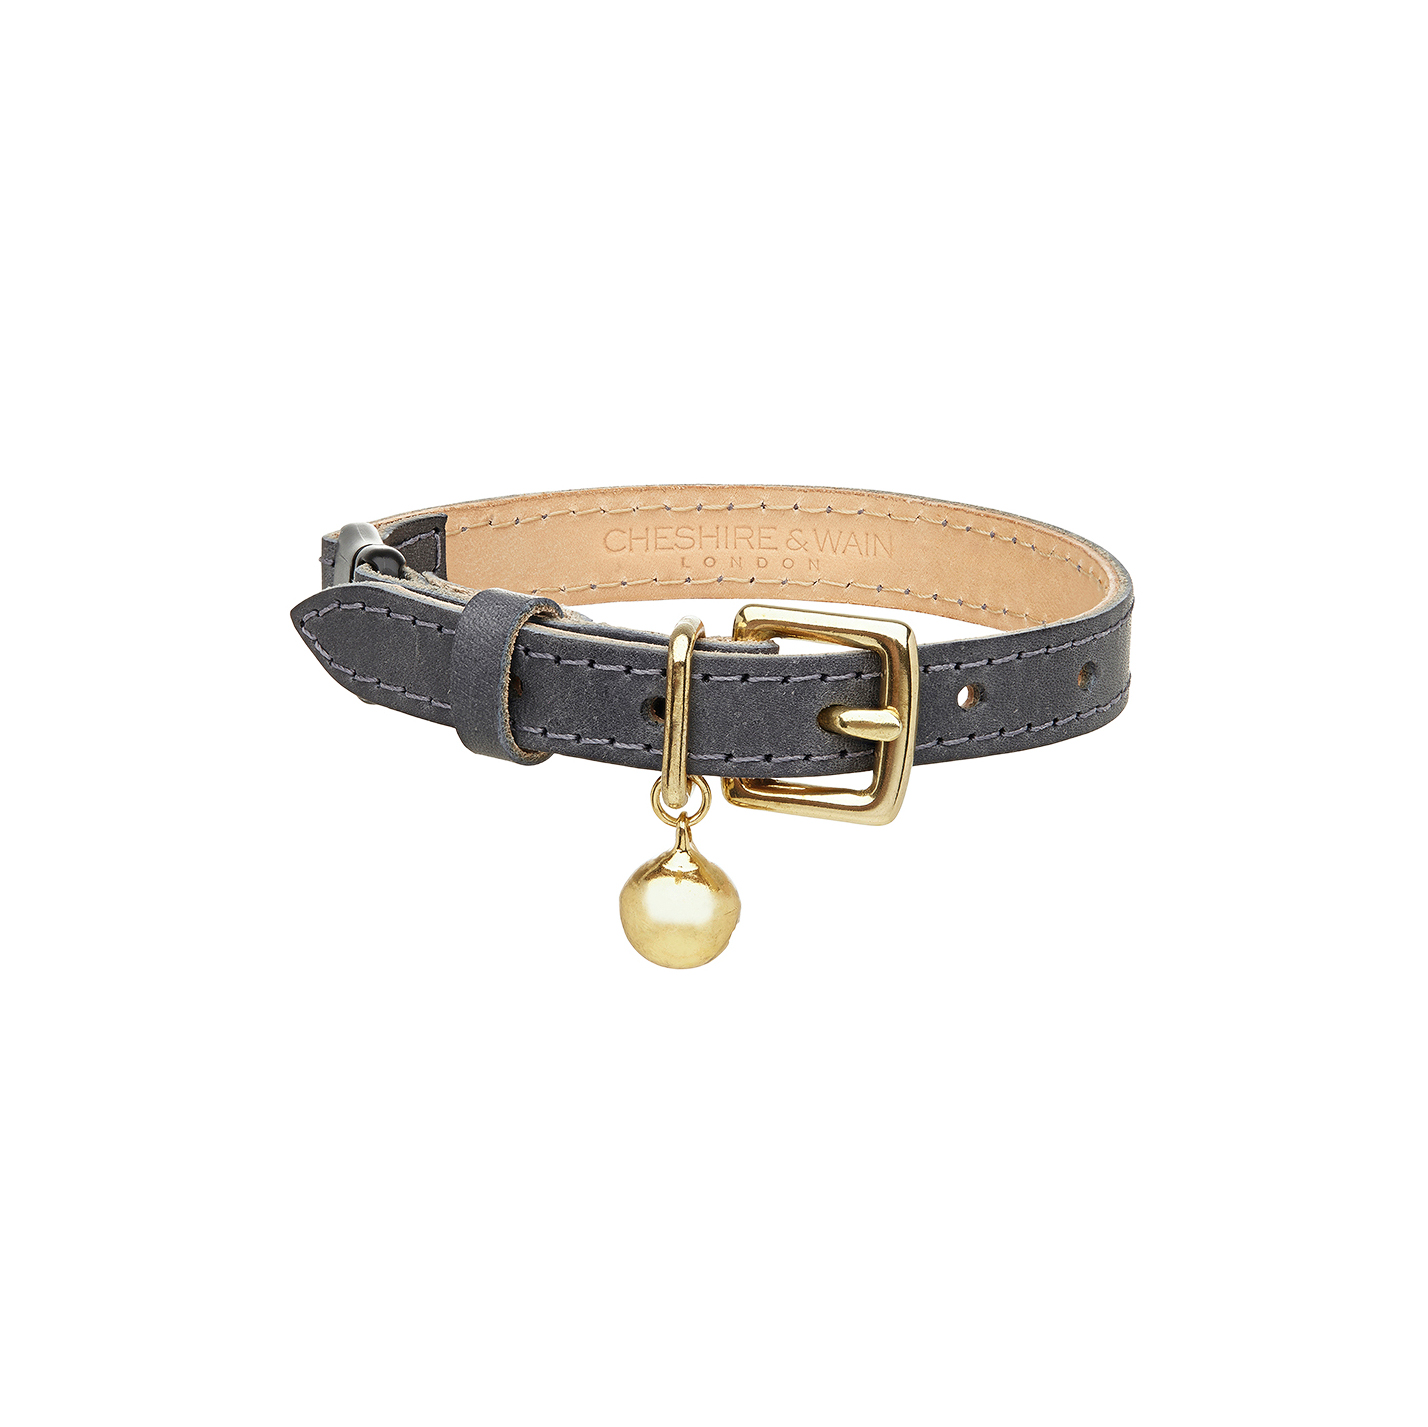 pet gift guide bell cat collar cheshire and wain